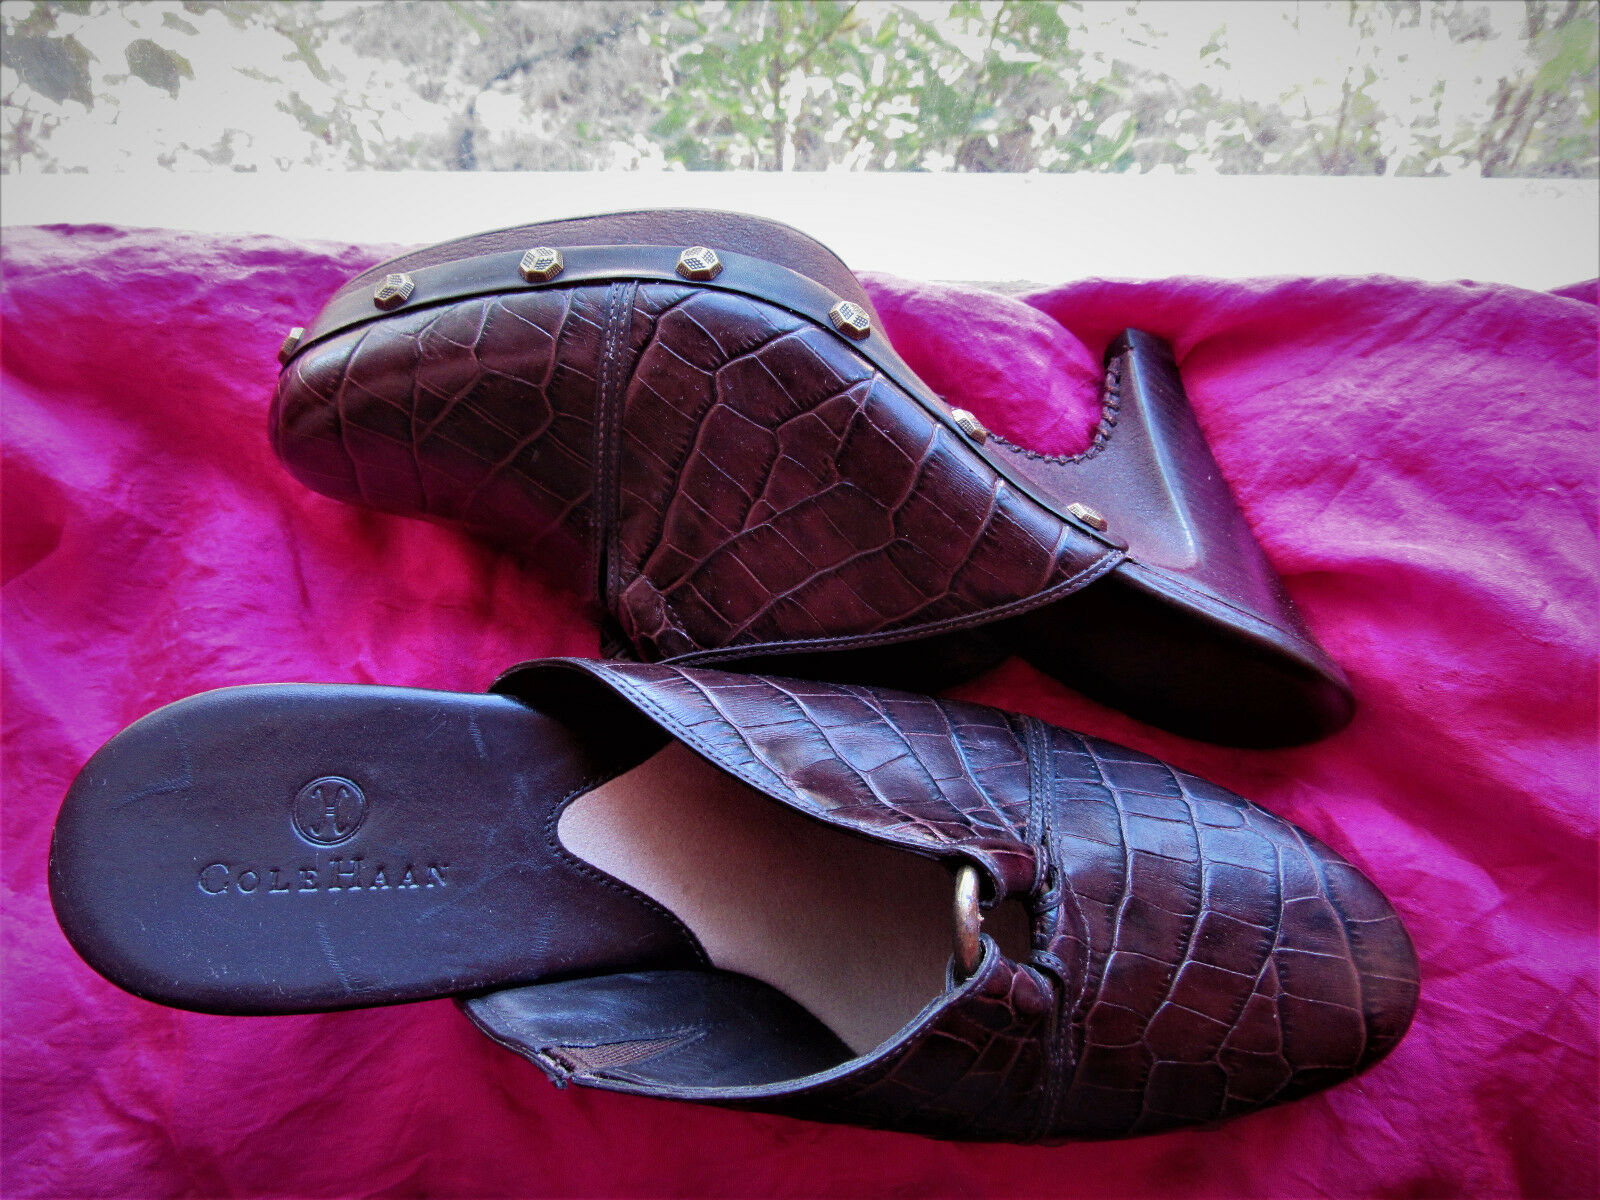 COLE HAAN SHOES BROWN CROC LEATHER CLASSY CLOGS /!SIZE 8.5 B/40 !MADE IN BRAZIL